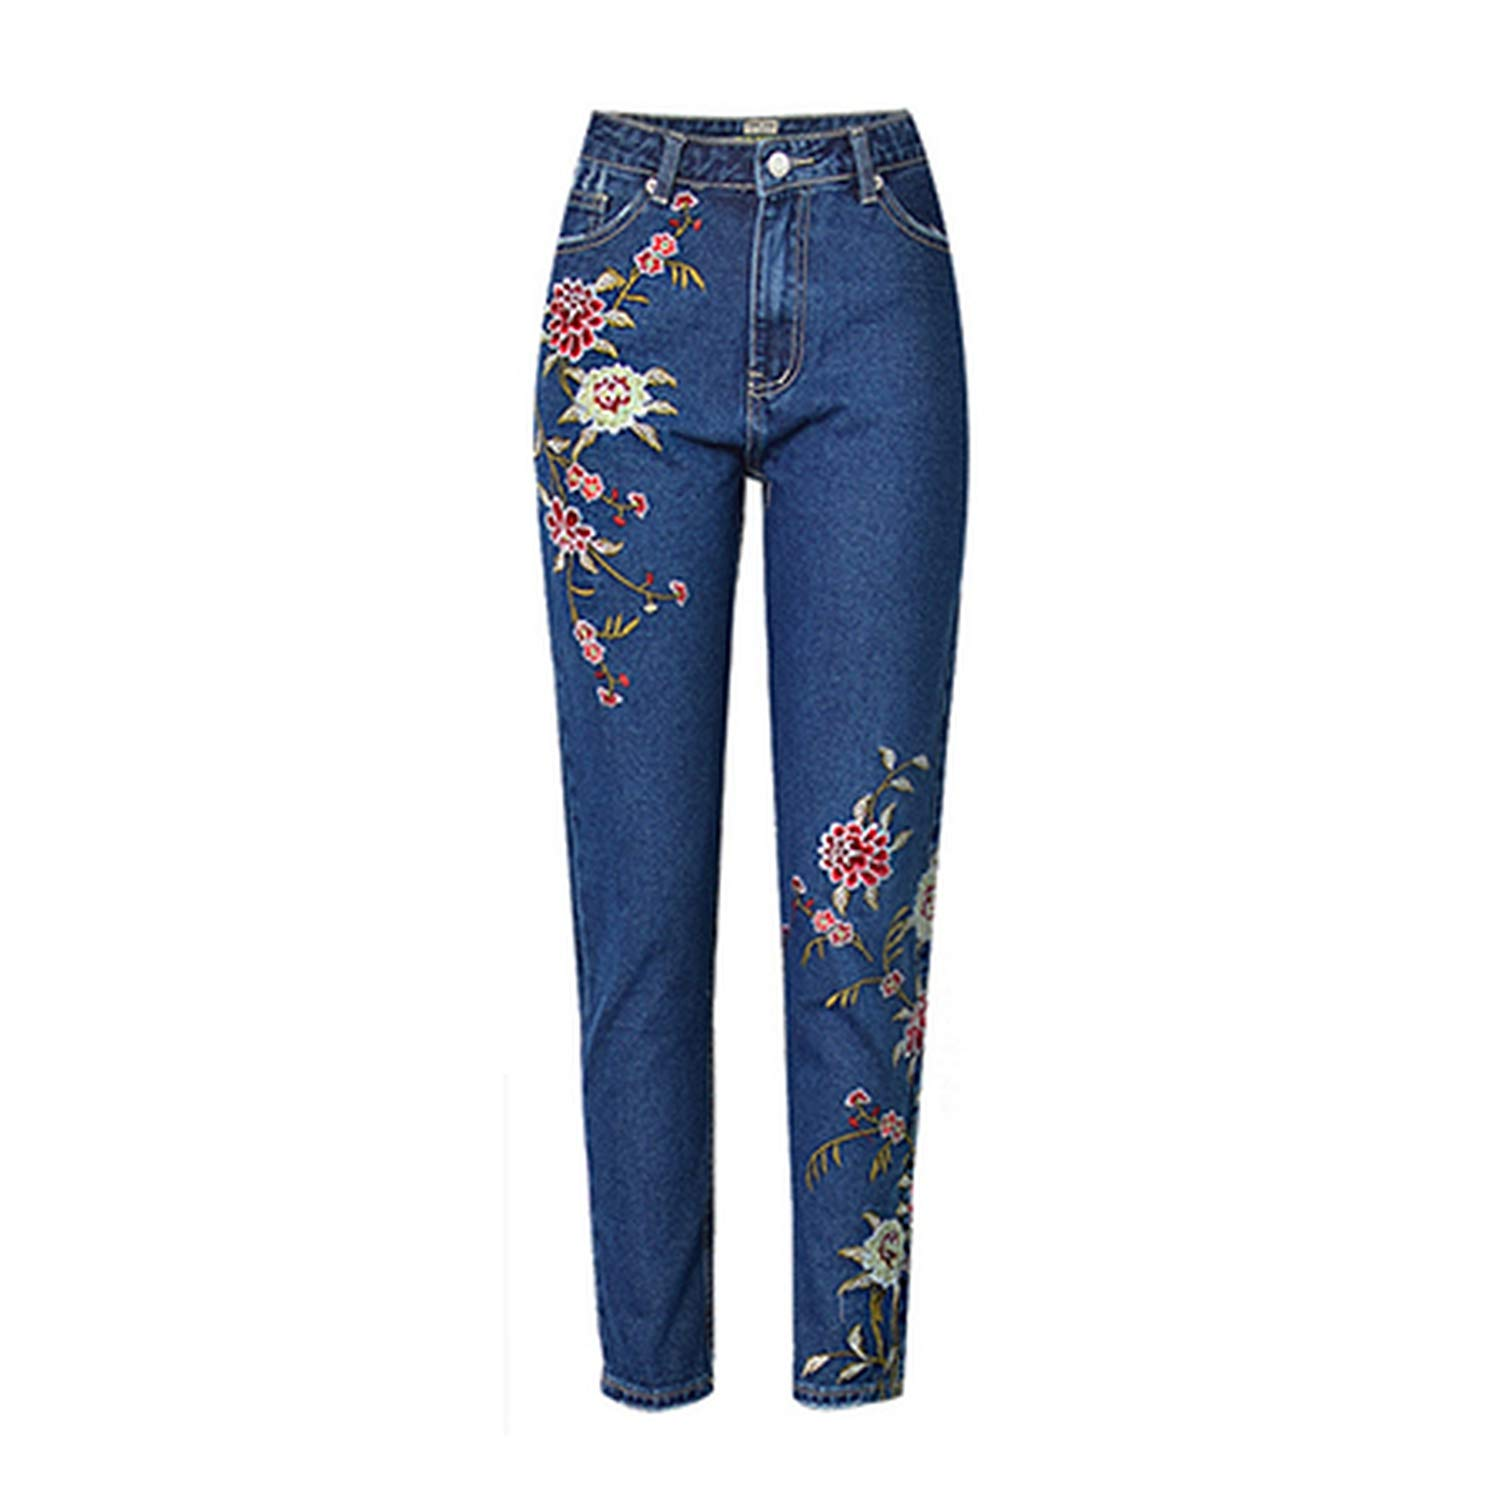 bluee 3XL Plus Size Classic High Waist Jeans Woman 2019 Flower Embroidery Jeans Female Casual Denim Pants Trousers